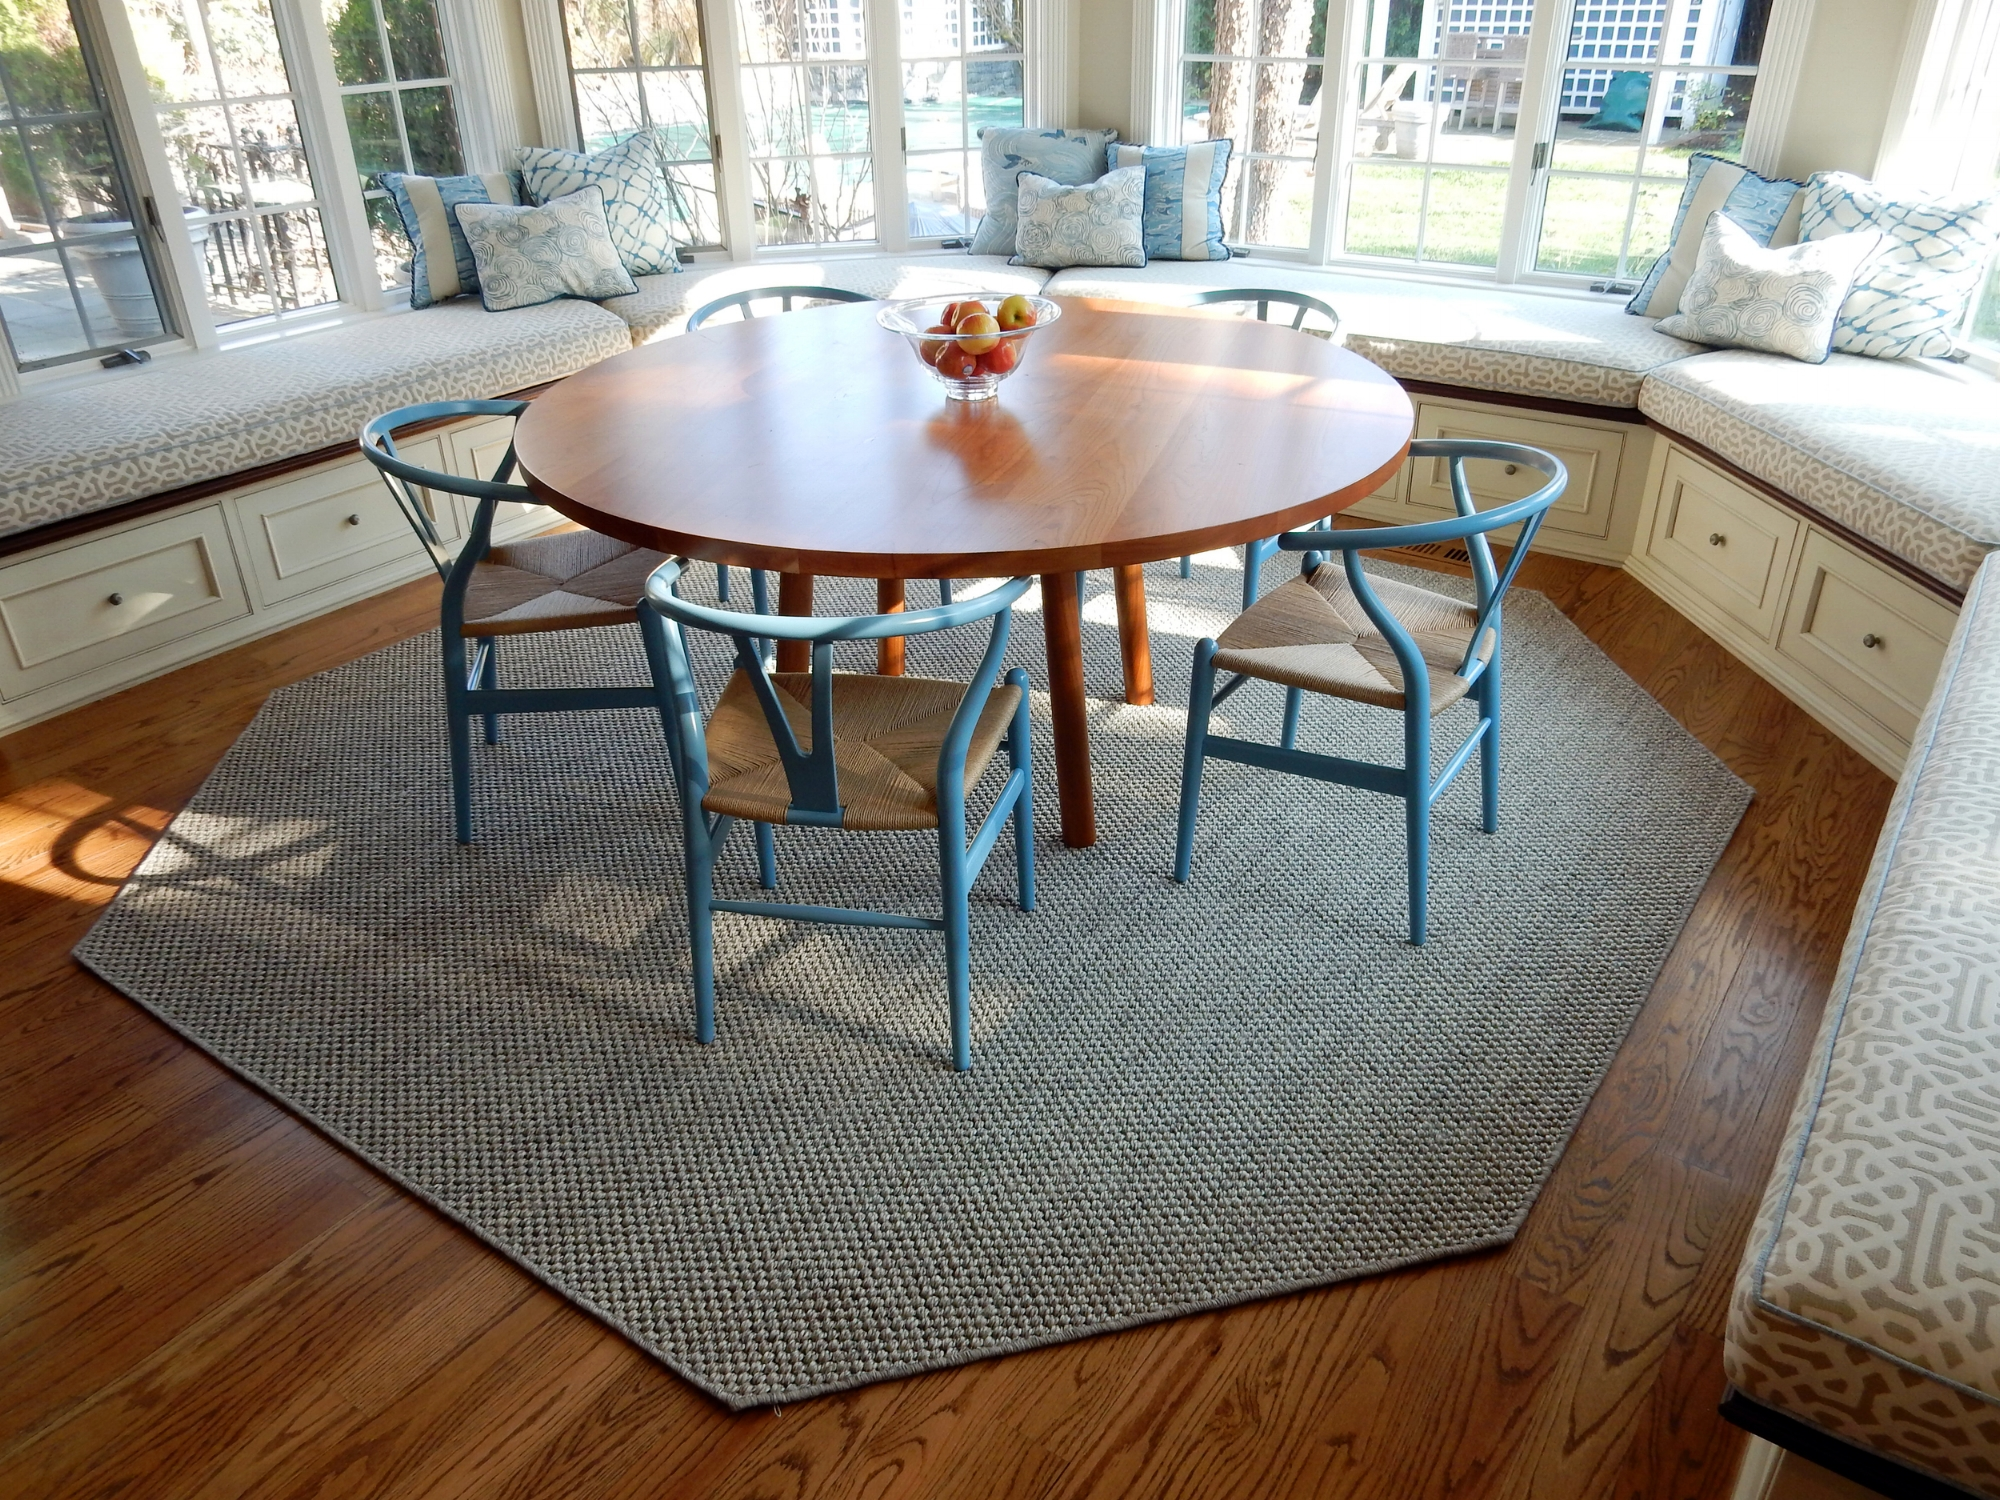 Custom-made octagonal sisal rug under a dining table in a breakfast nook